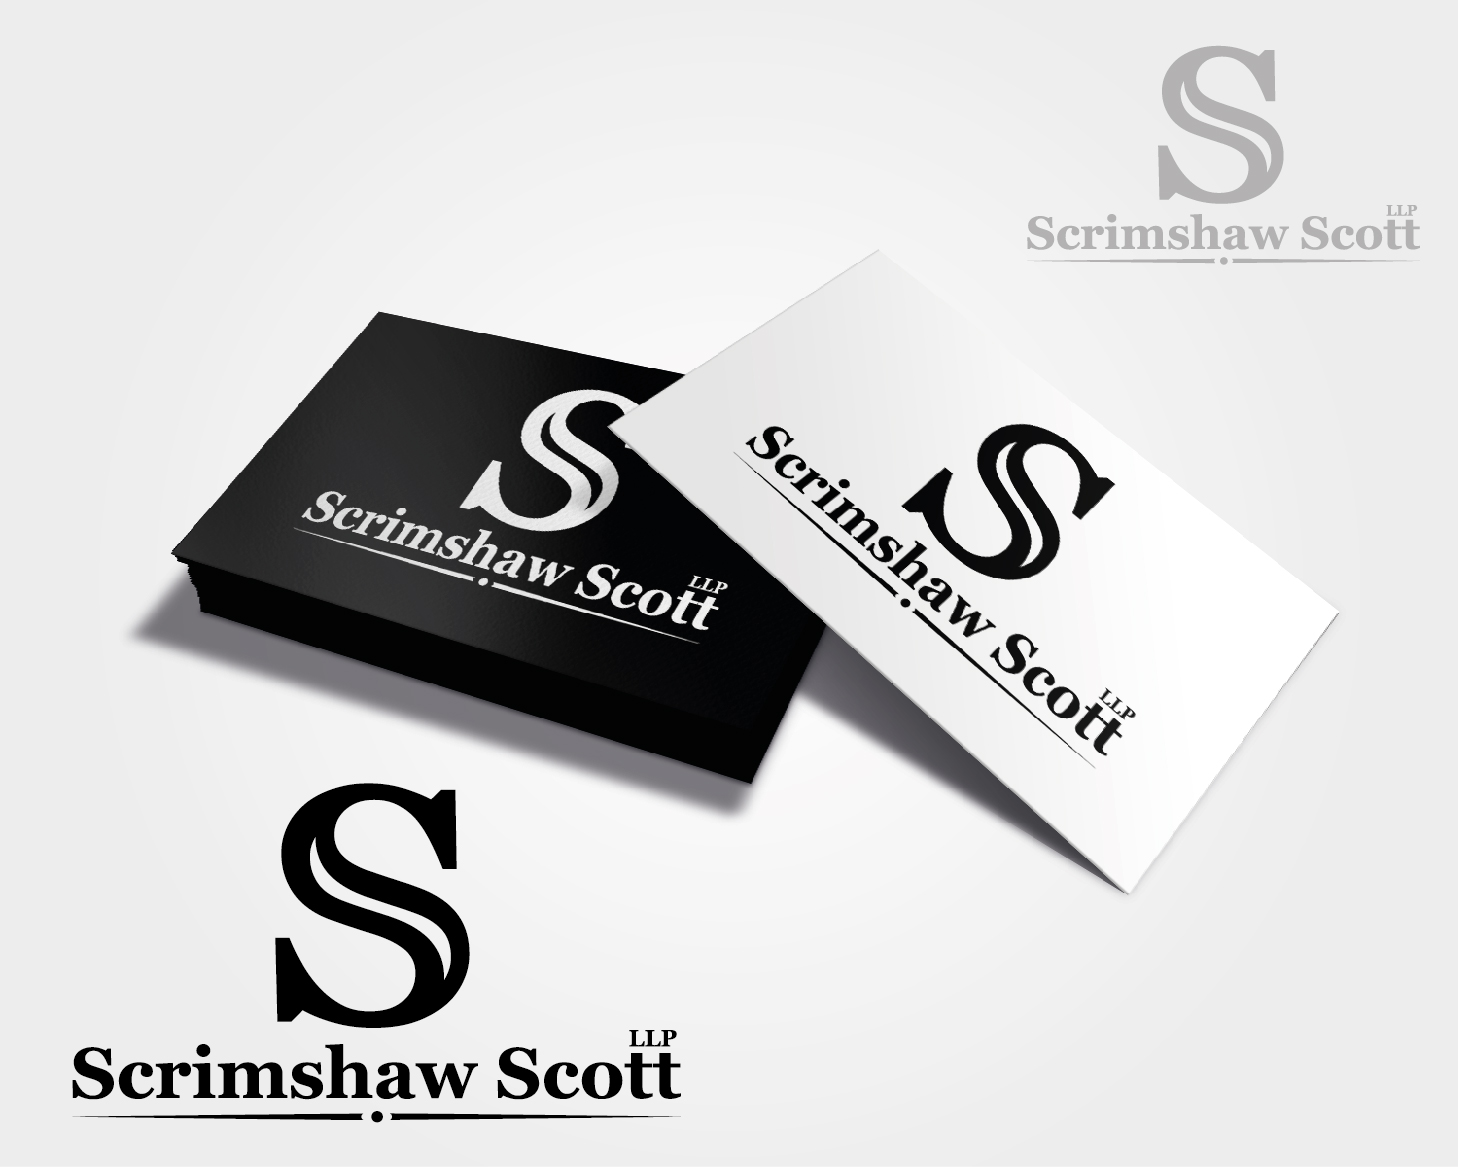 Logo Design by VENTSISLAV KOVACHEV - Entry No. 49 in the Logo Design Contest Creative Logo Design for Scrimshaw Scott LLP.